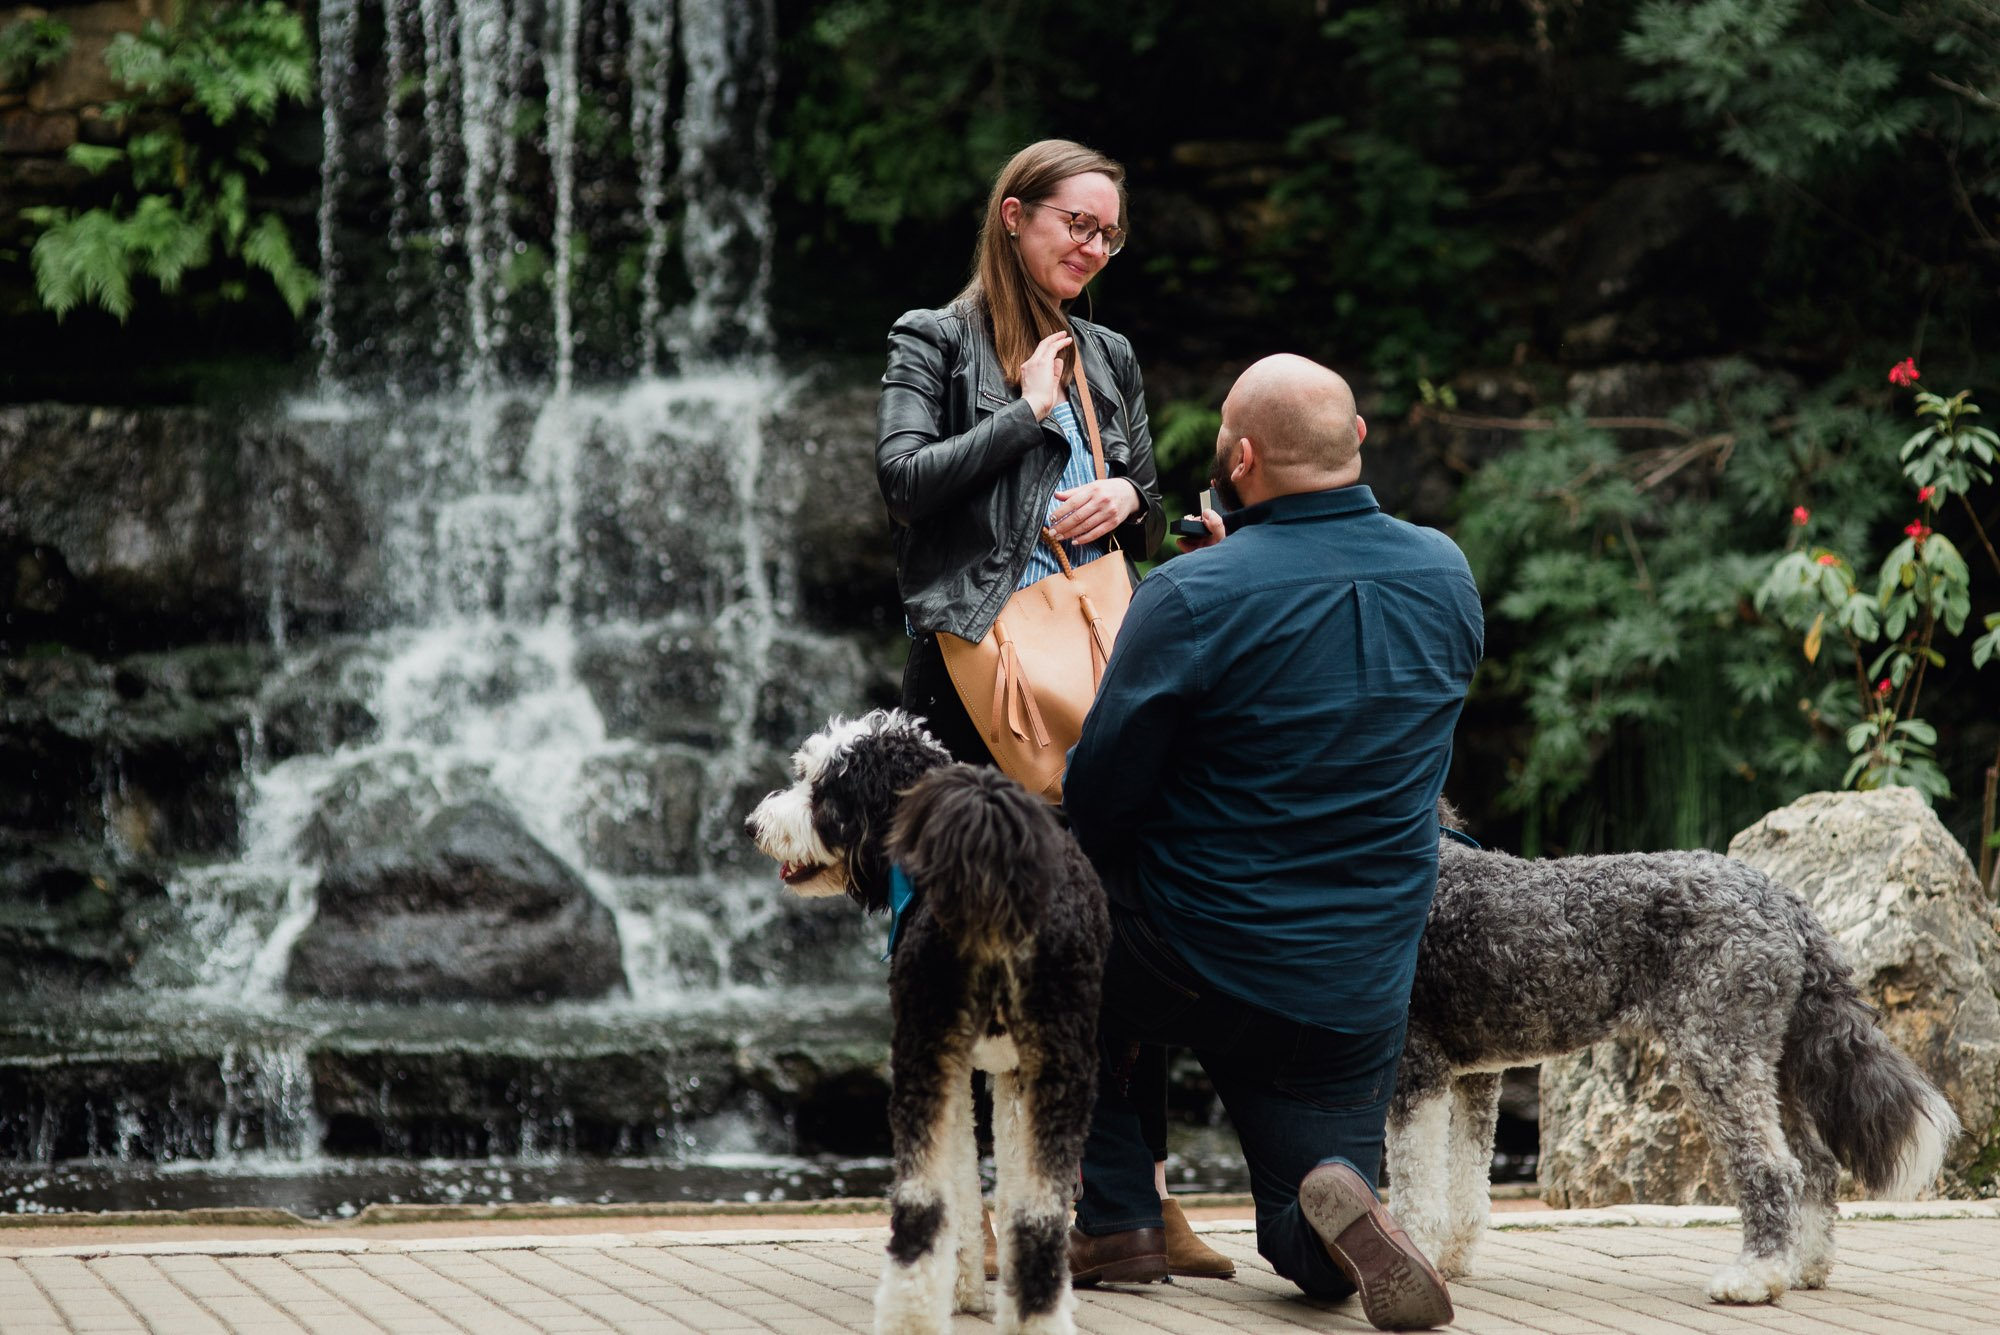 austin proposal photography with dogs